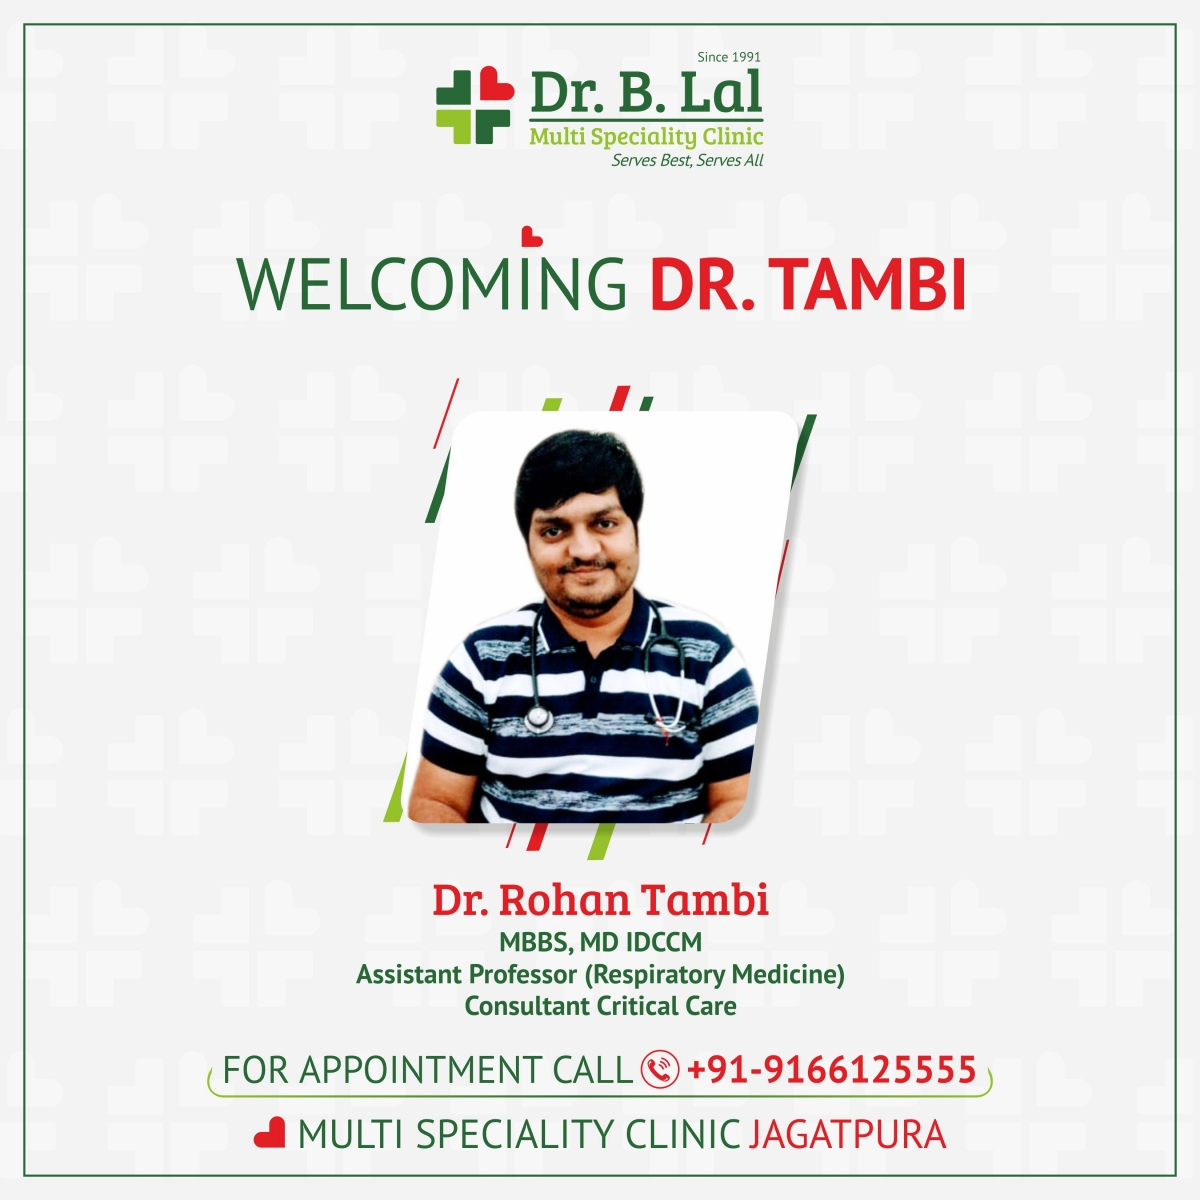 Welcoming Dr. Rohan Tambi in Dr. B. Lal Multi Speciality Clinic